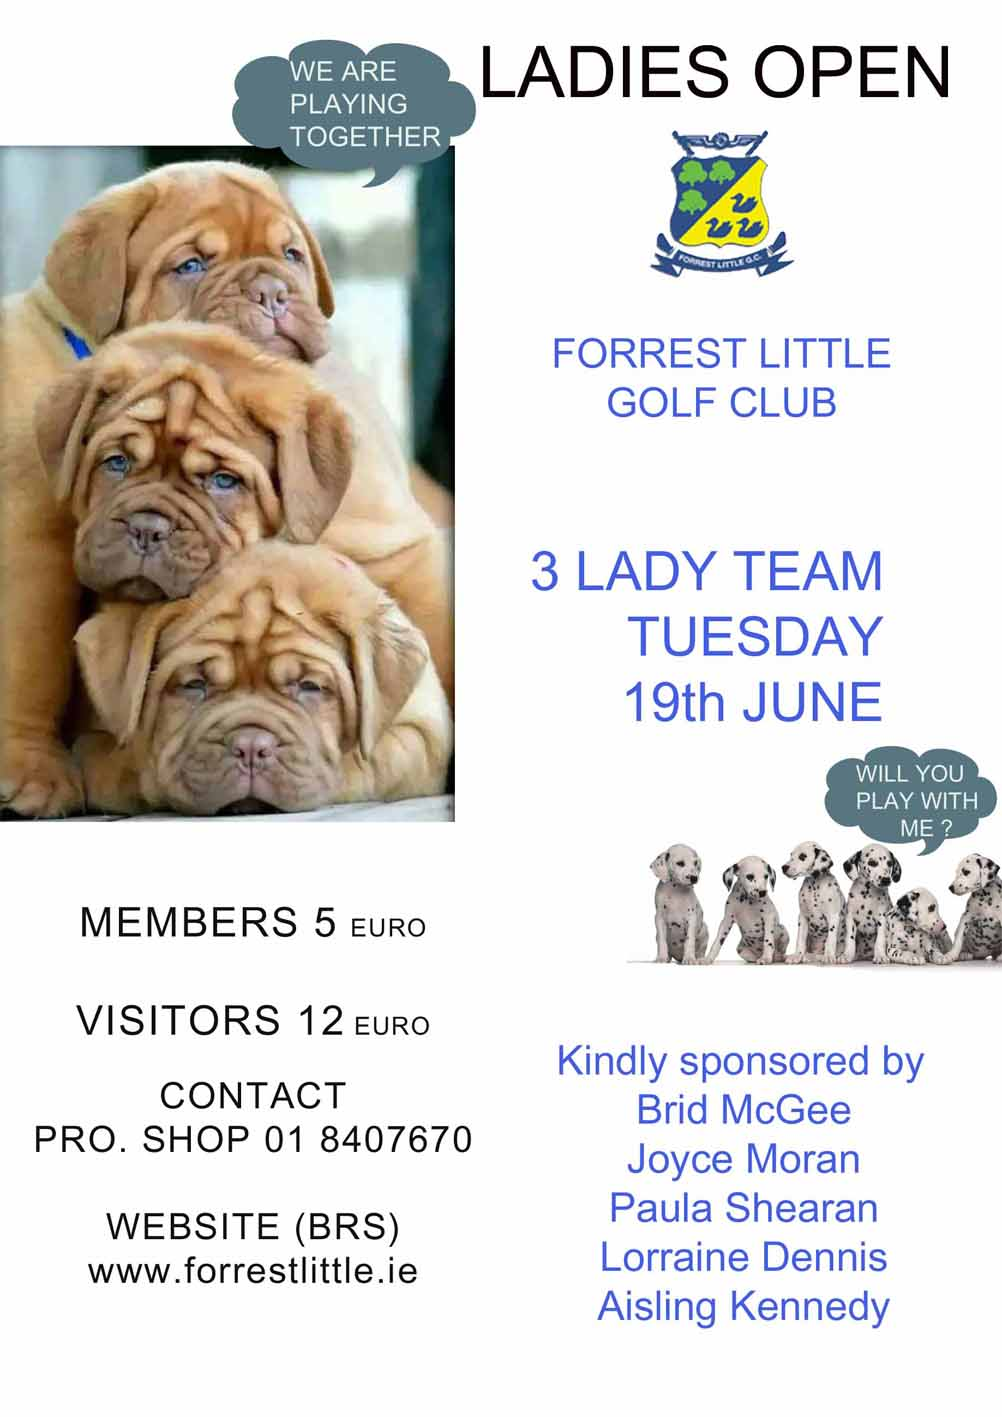 Ladies Open 19th June